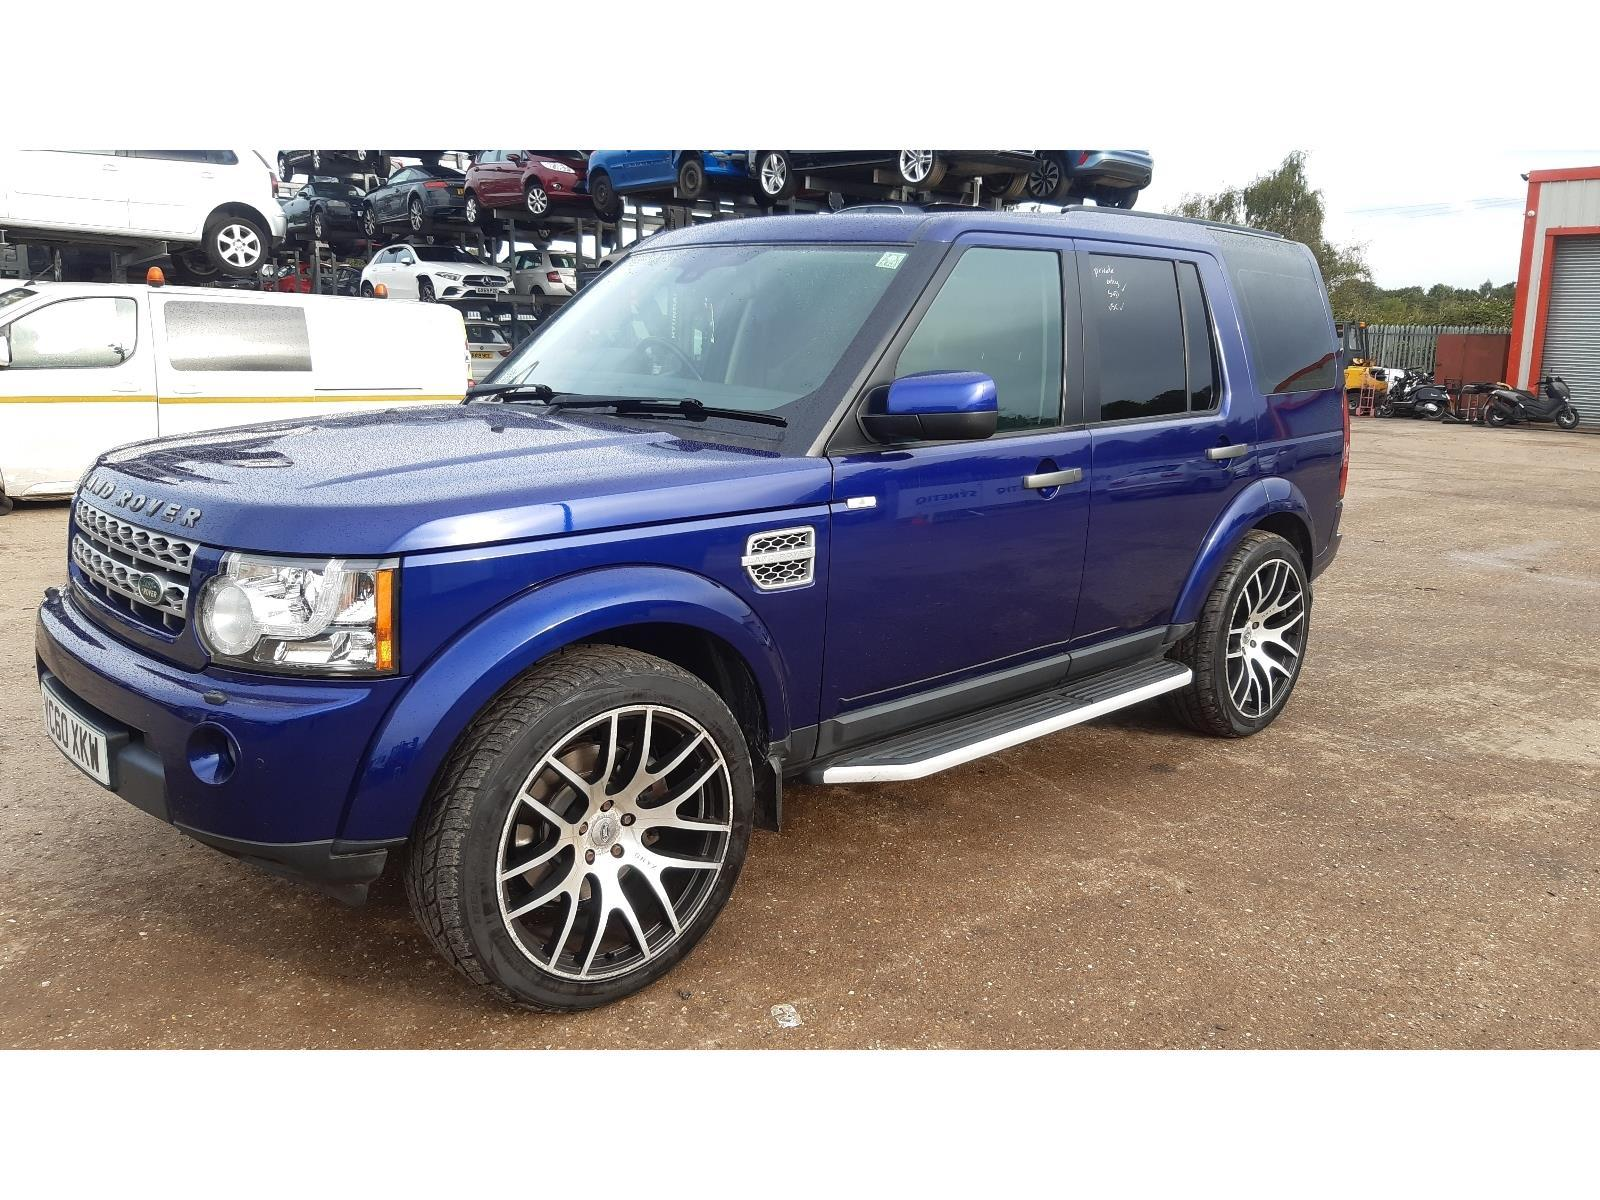 2010 LAND ROVER DISCOVERY 4 TDV6 XS 2993cc TURBO DIESEL AUTOMATIC 6 Speed 5 DOOR ESTATE